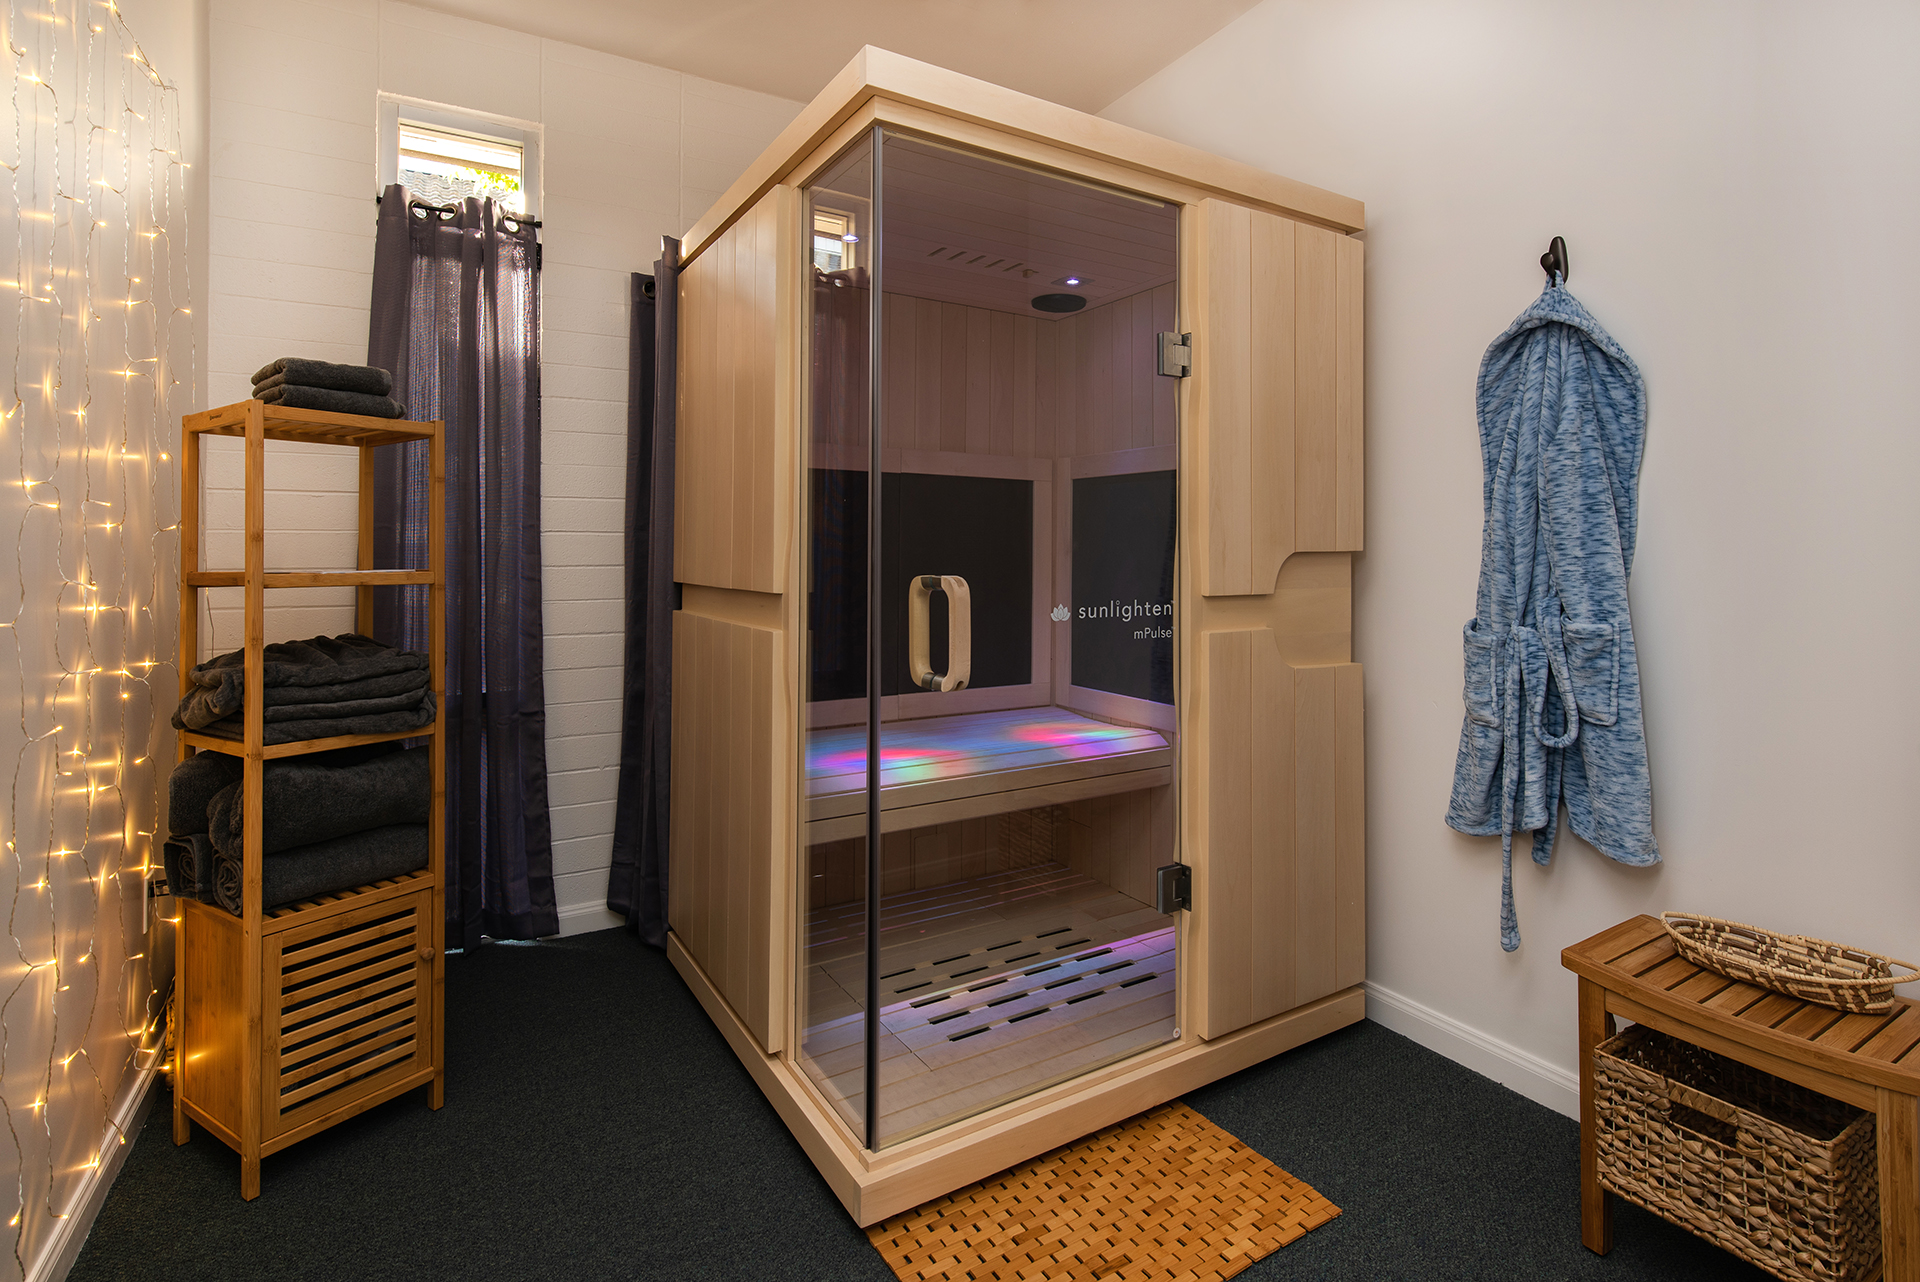 How Many Times A Week Should You Use An Infrared Sauna